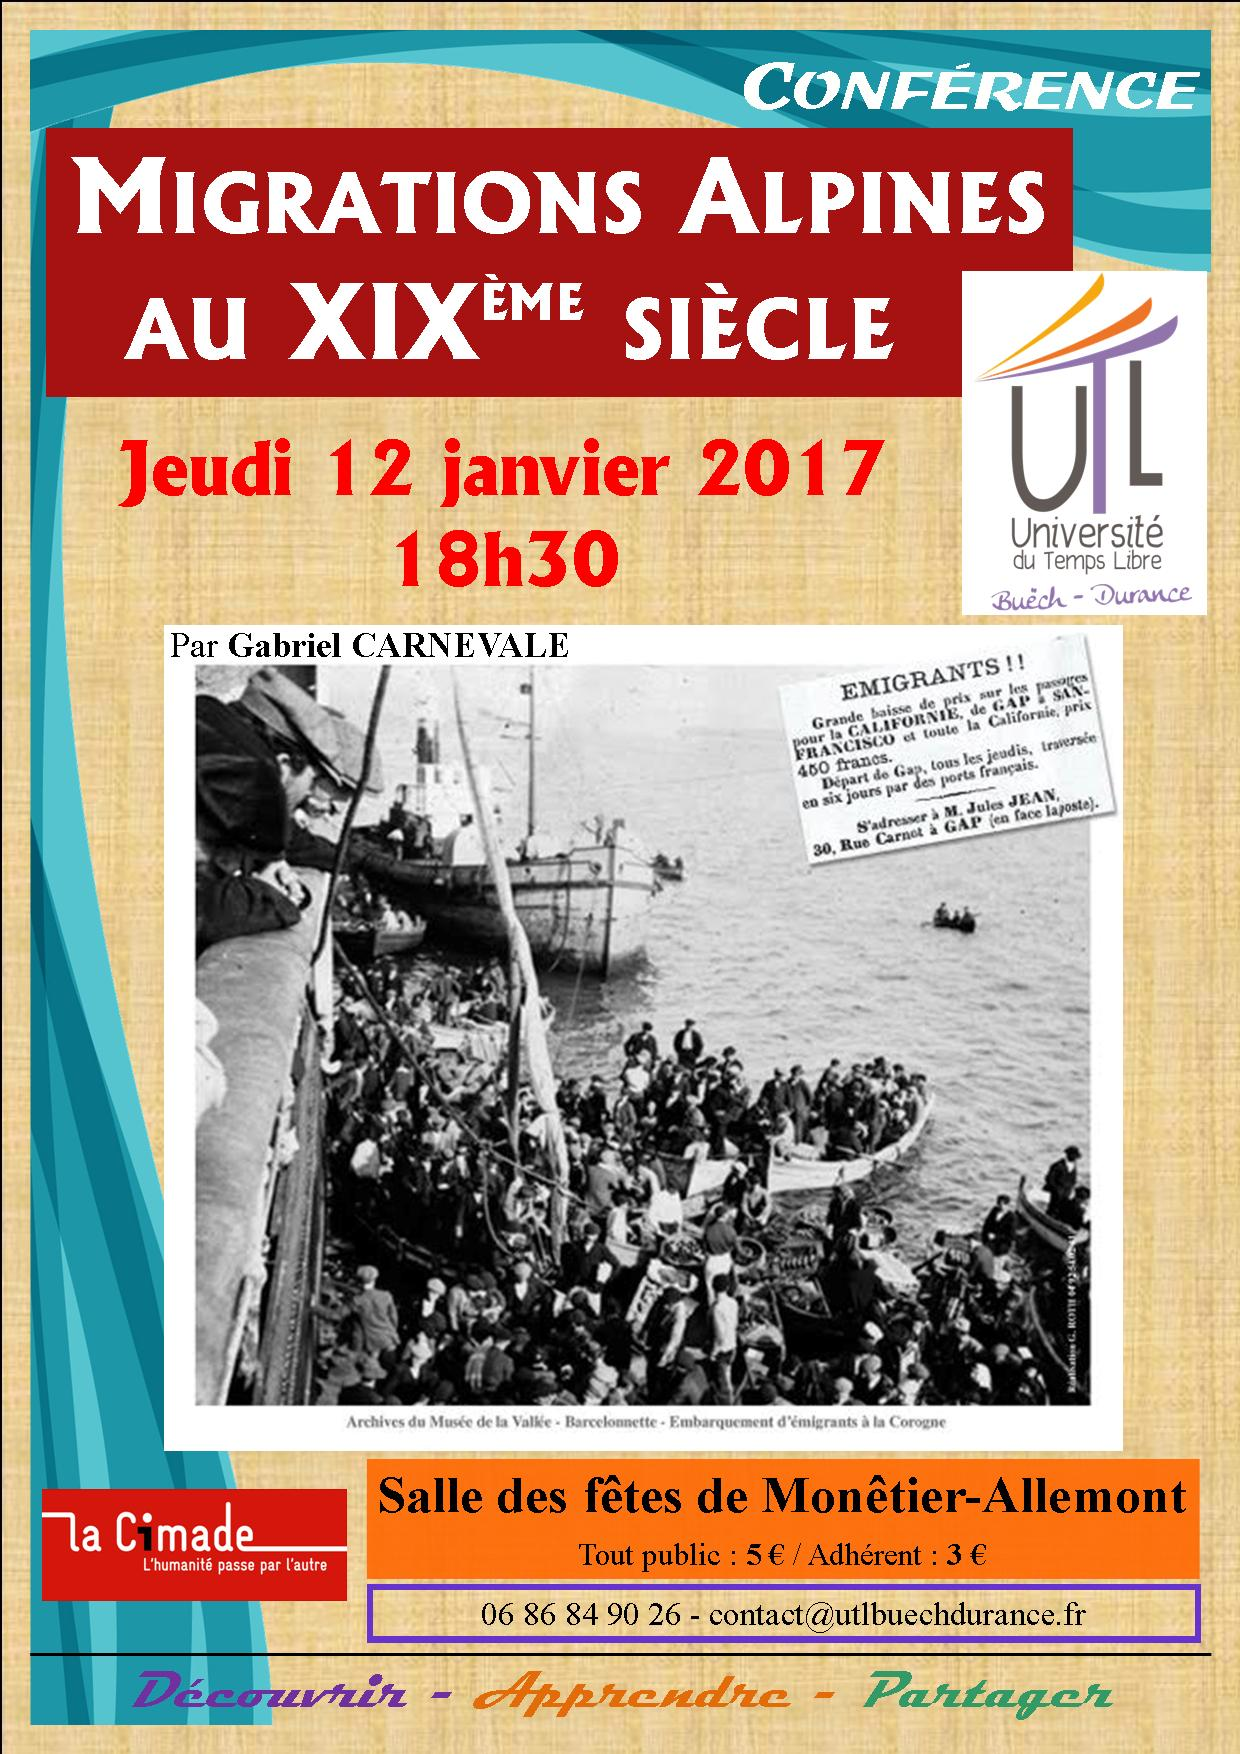 2017-01-12-migrations-alpines-au-xixeme-siecle